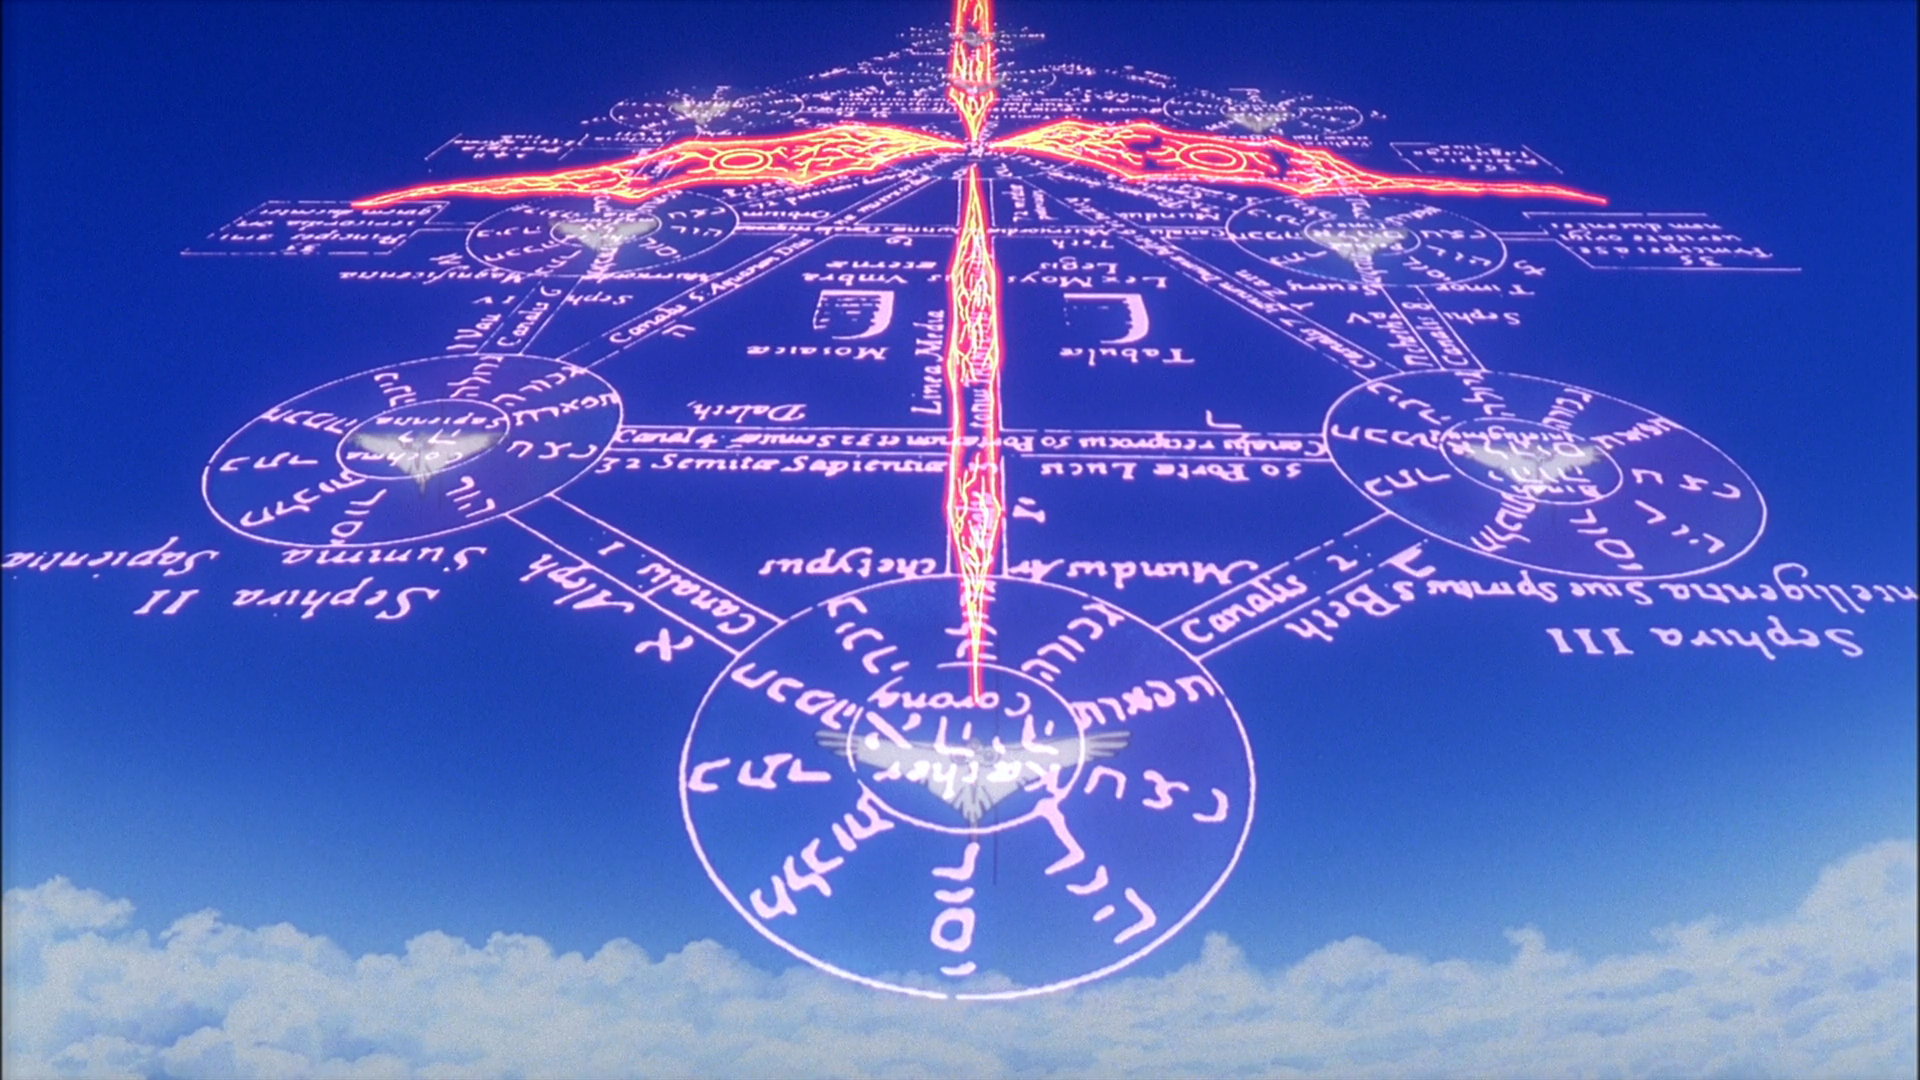 Tree Of Life Evangelion Fandom The tree of sephiroth (tree of life) is mentioned, as well as shown in the opening title sequence and in gendo's office, with hebrew inscriptions on it (the terms written there are mostly kabbalic). tree of life evangelion fandom